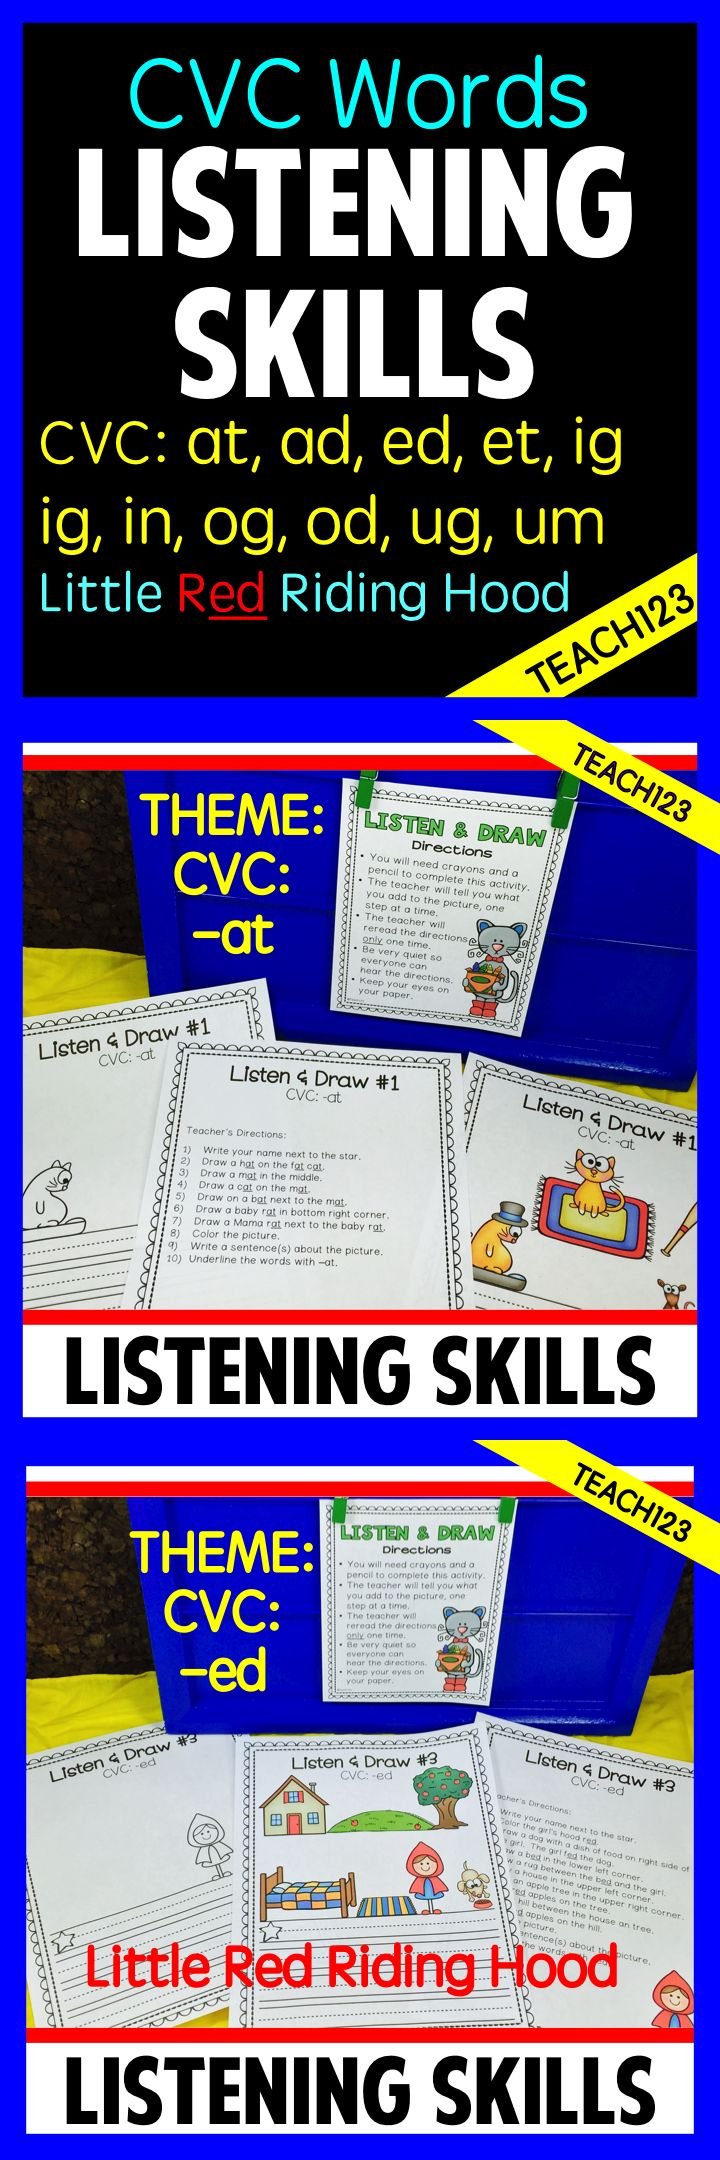 best images about a listening skills esl sub cvc word family listen and draw lessons cvc word family theme will strengthen students reading writing and listening skills